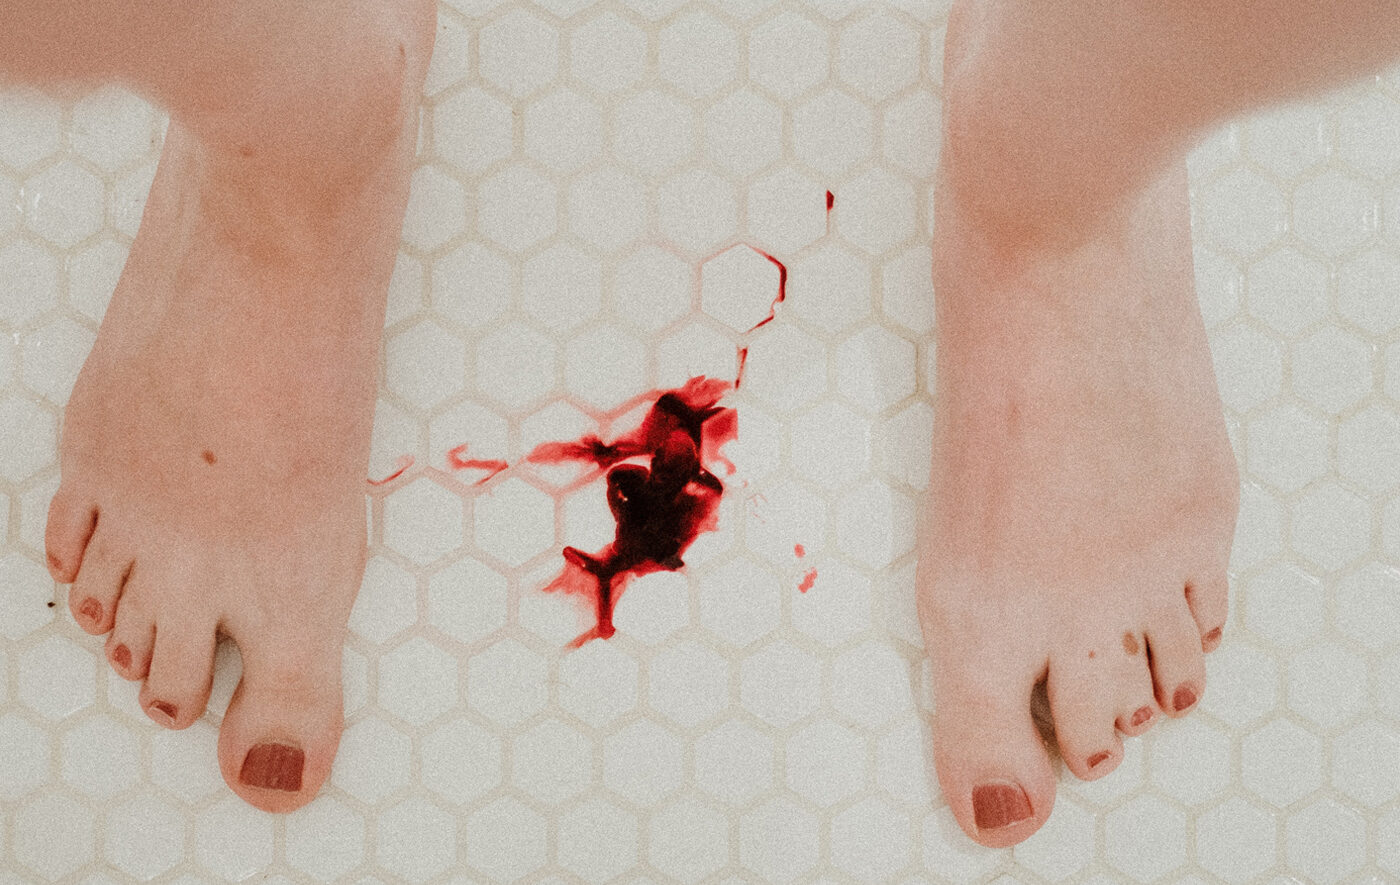 A woman standing in a white shower with period blood on the floor between her feet